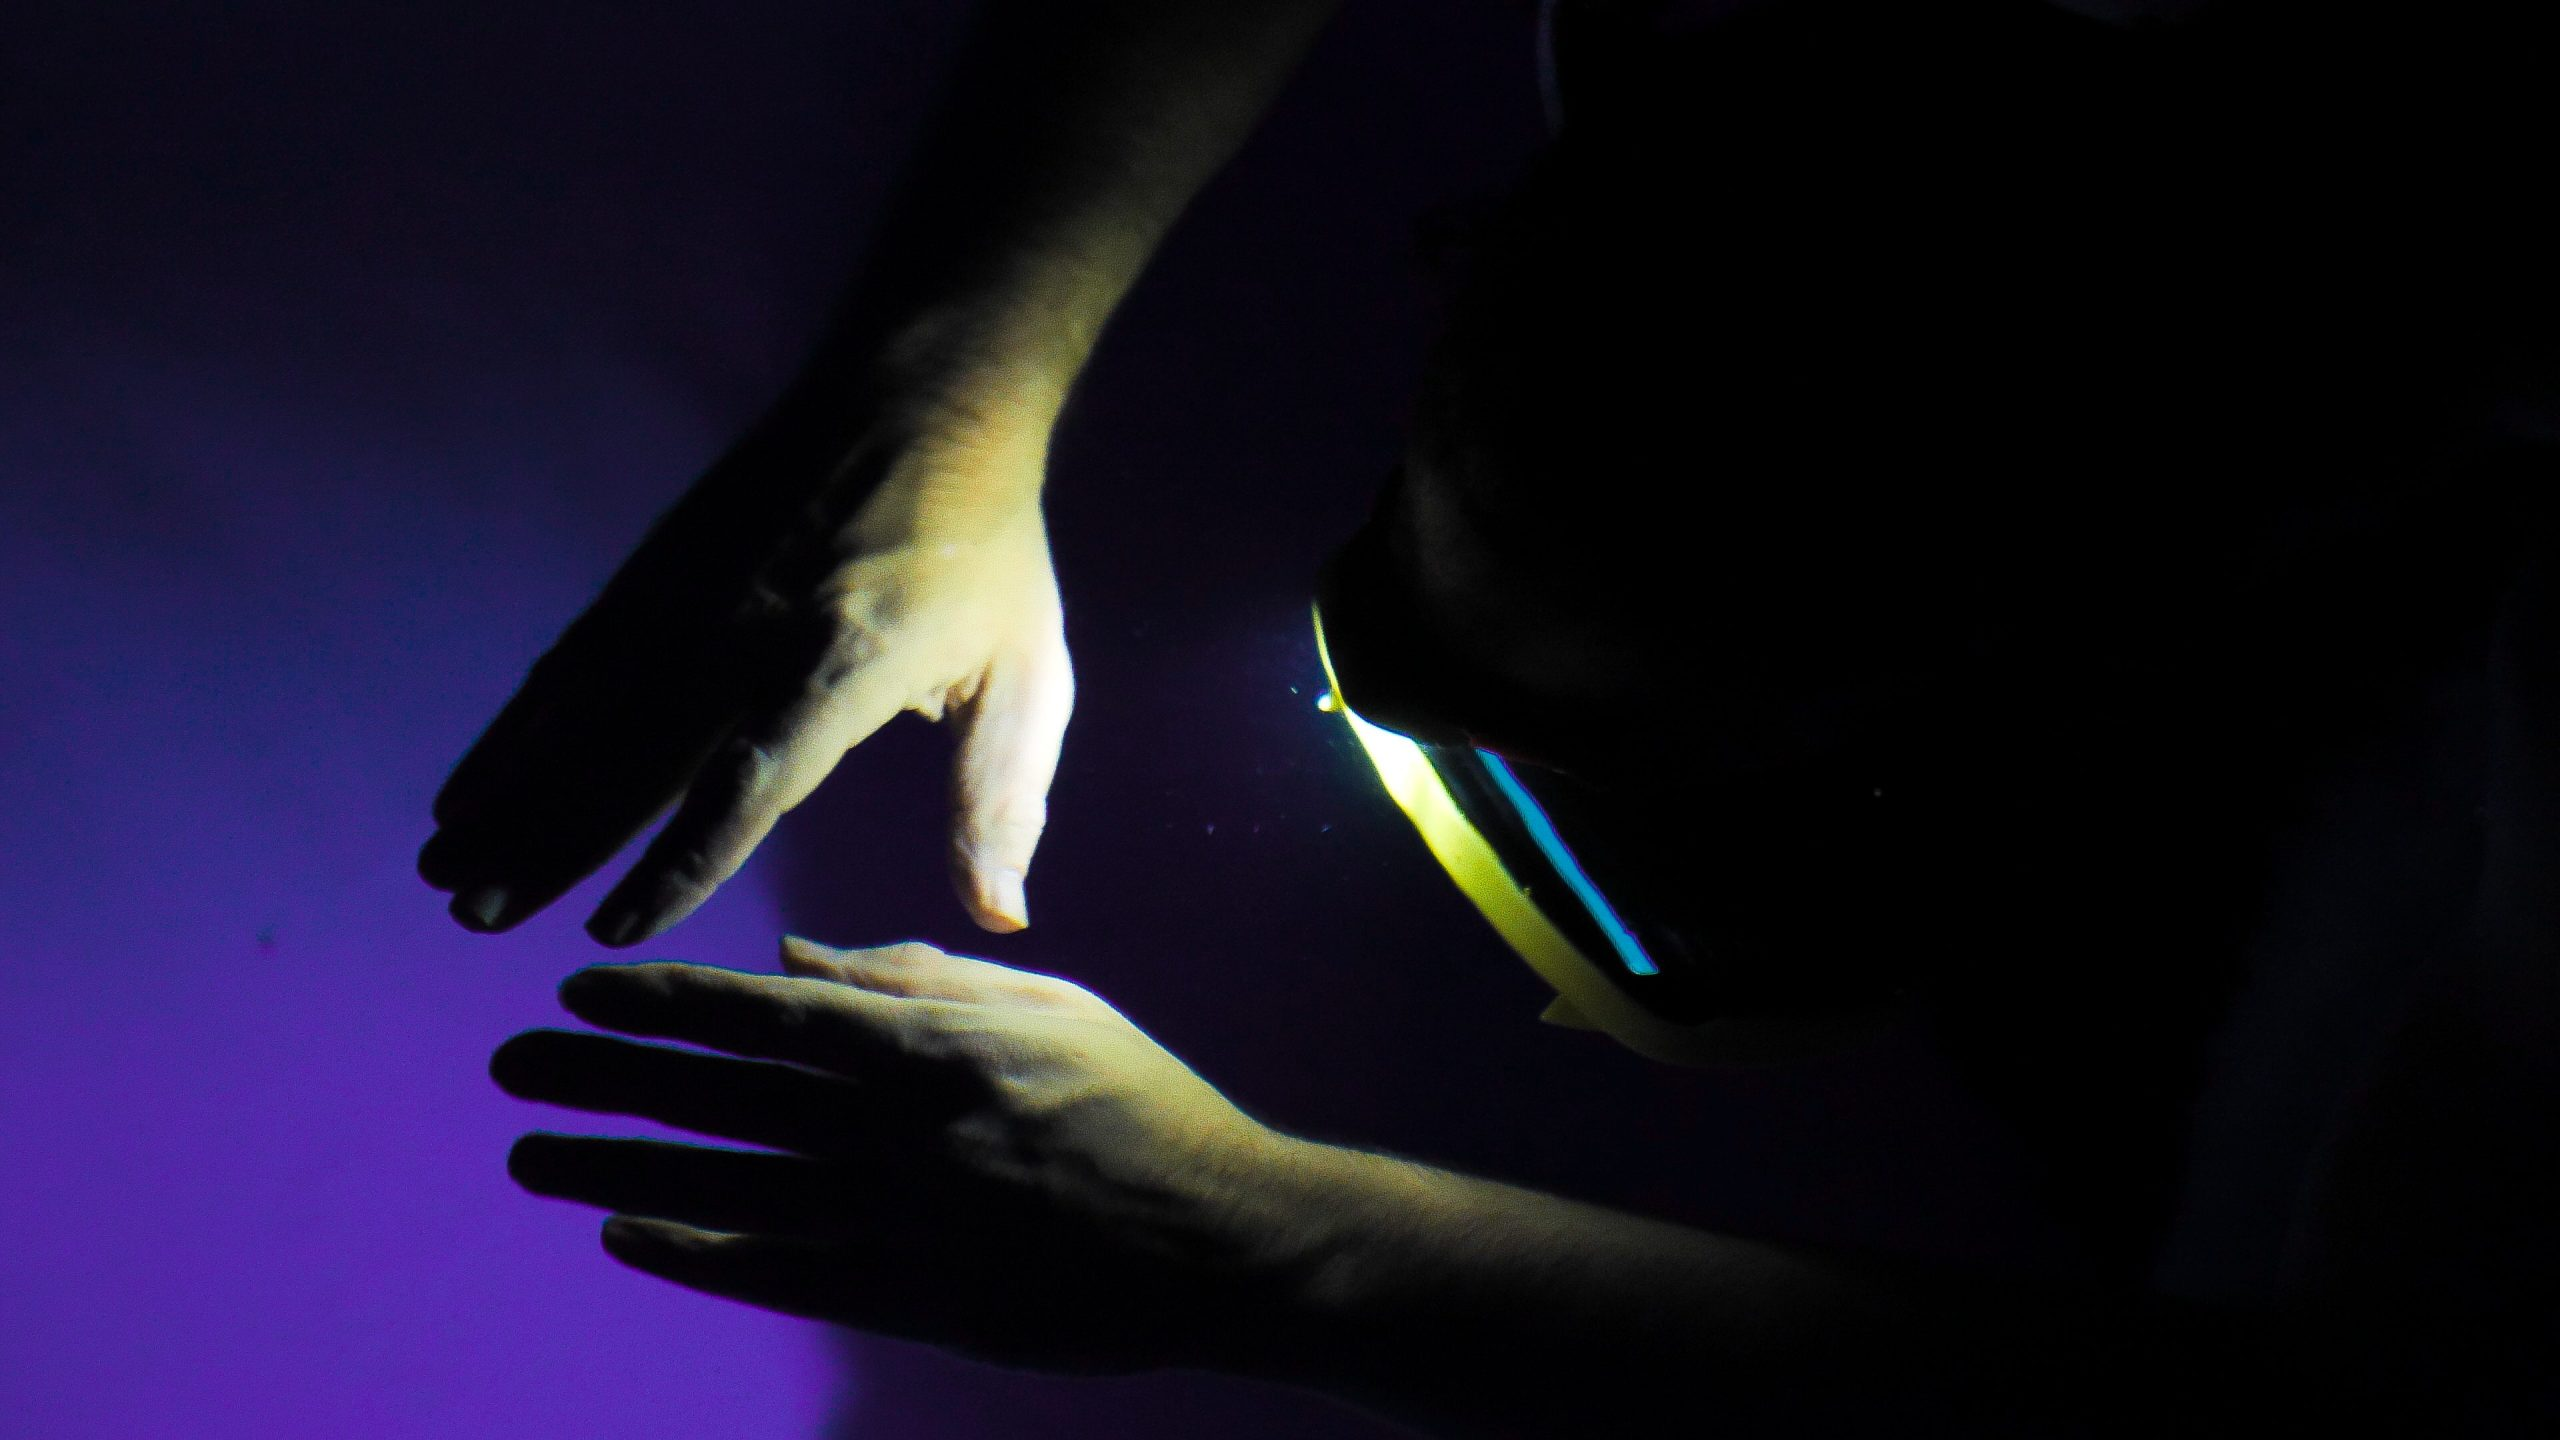 Close up of hands of viewer in SPACED OUT experience.